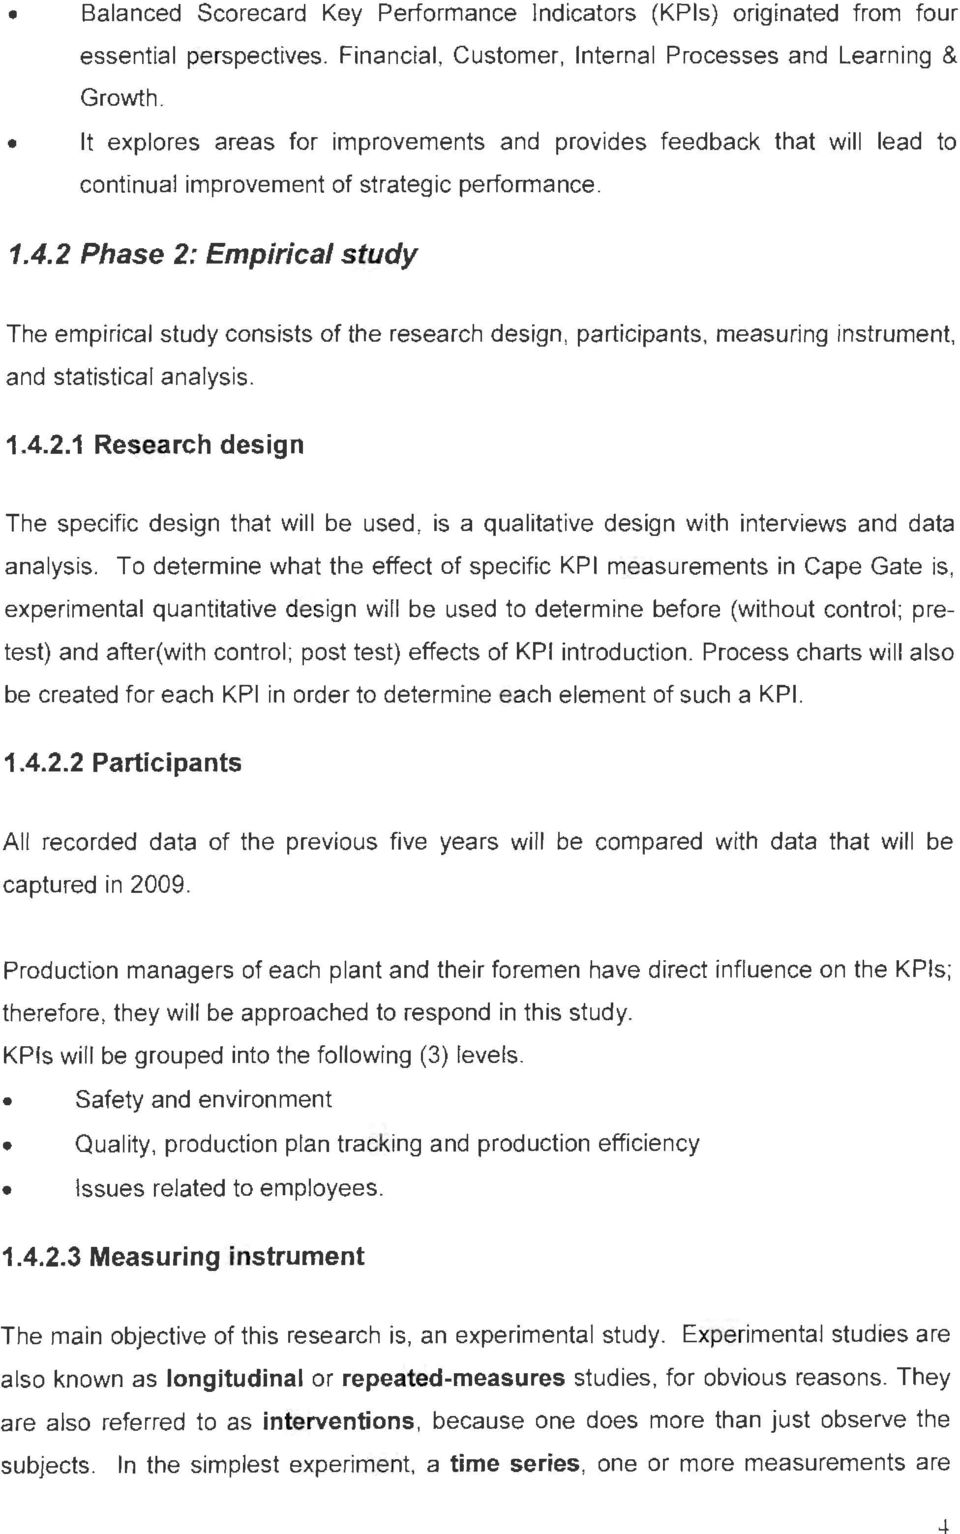 2 Phase 2: Empirical study The empirical study consists of the research design, participants, measuring instrument, and statistical analysis. 1.4.2.1 Research design The specific design that will be used, is a qualitative design with interviews and data analysis.